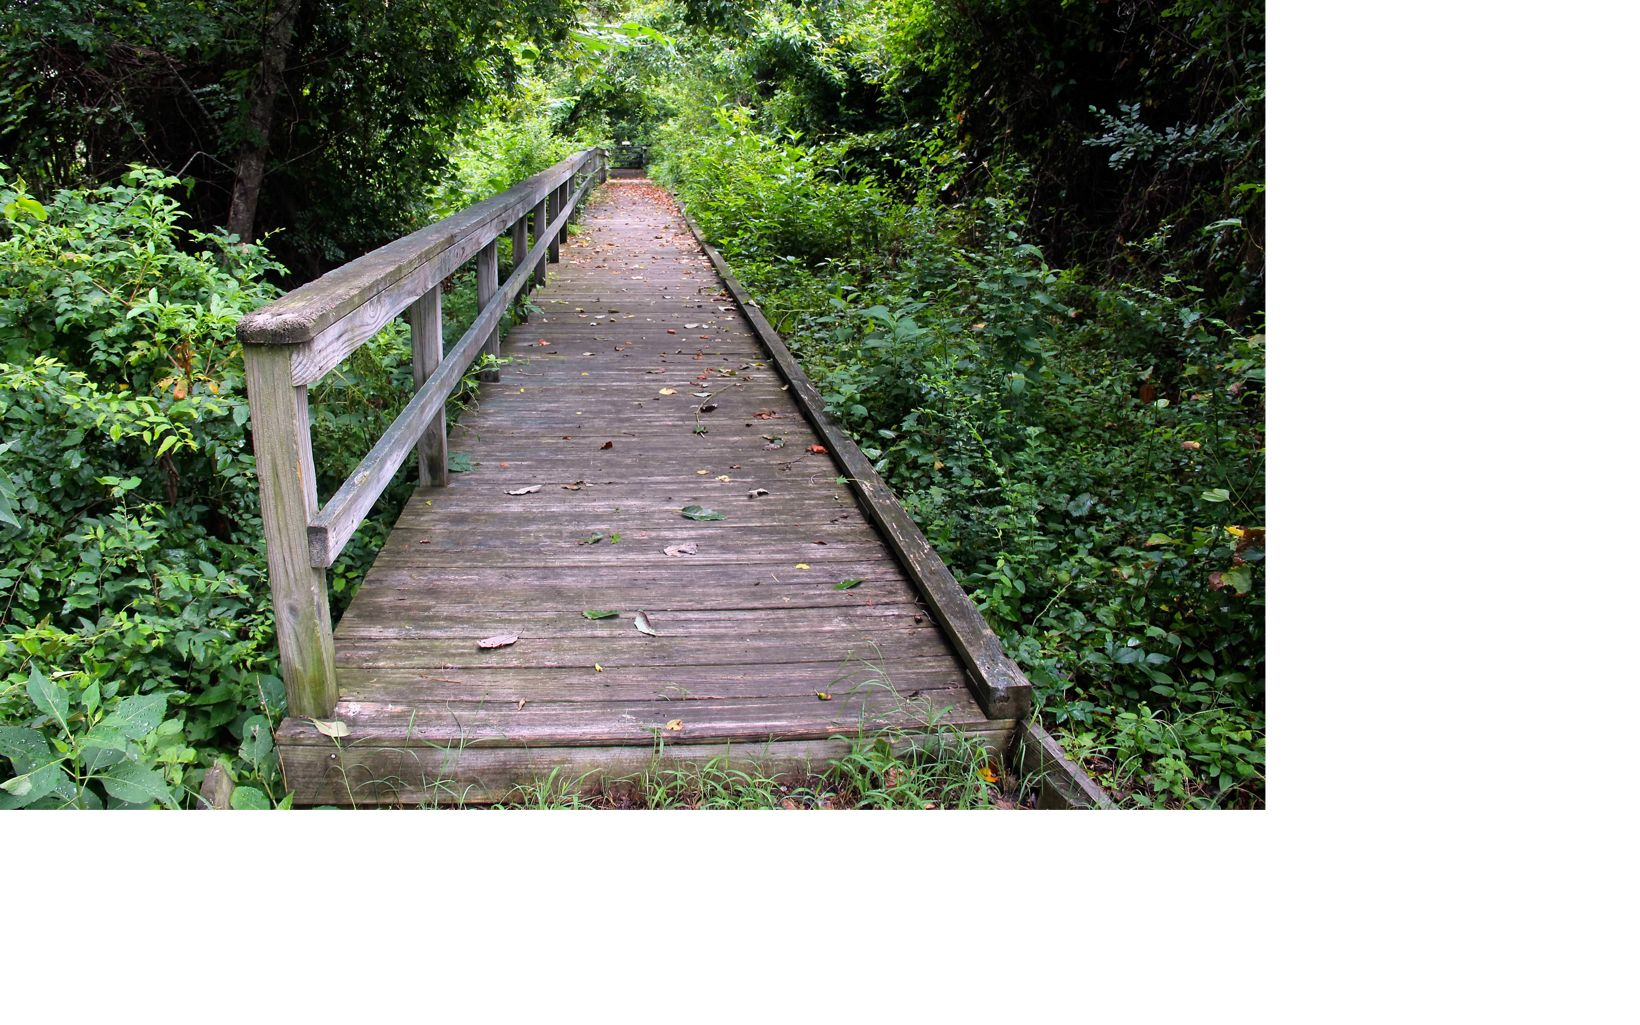 A wooden boardwalk offers a straight path over the marsh and deeper into the woods.